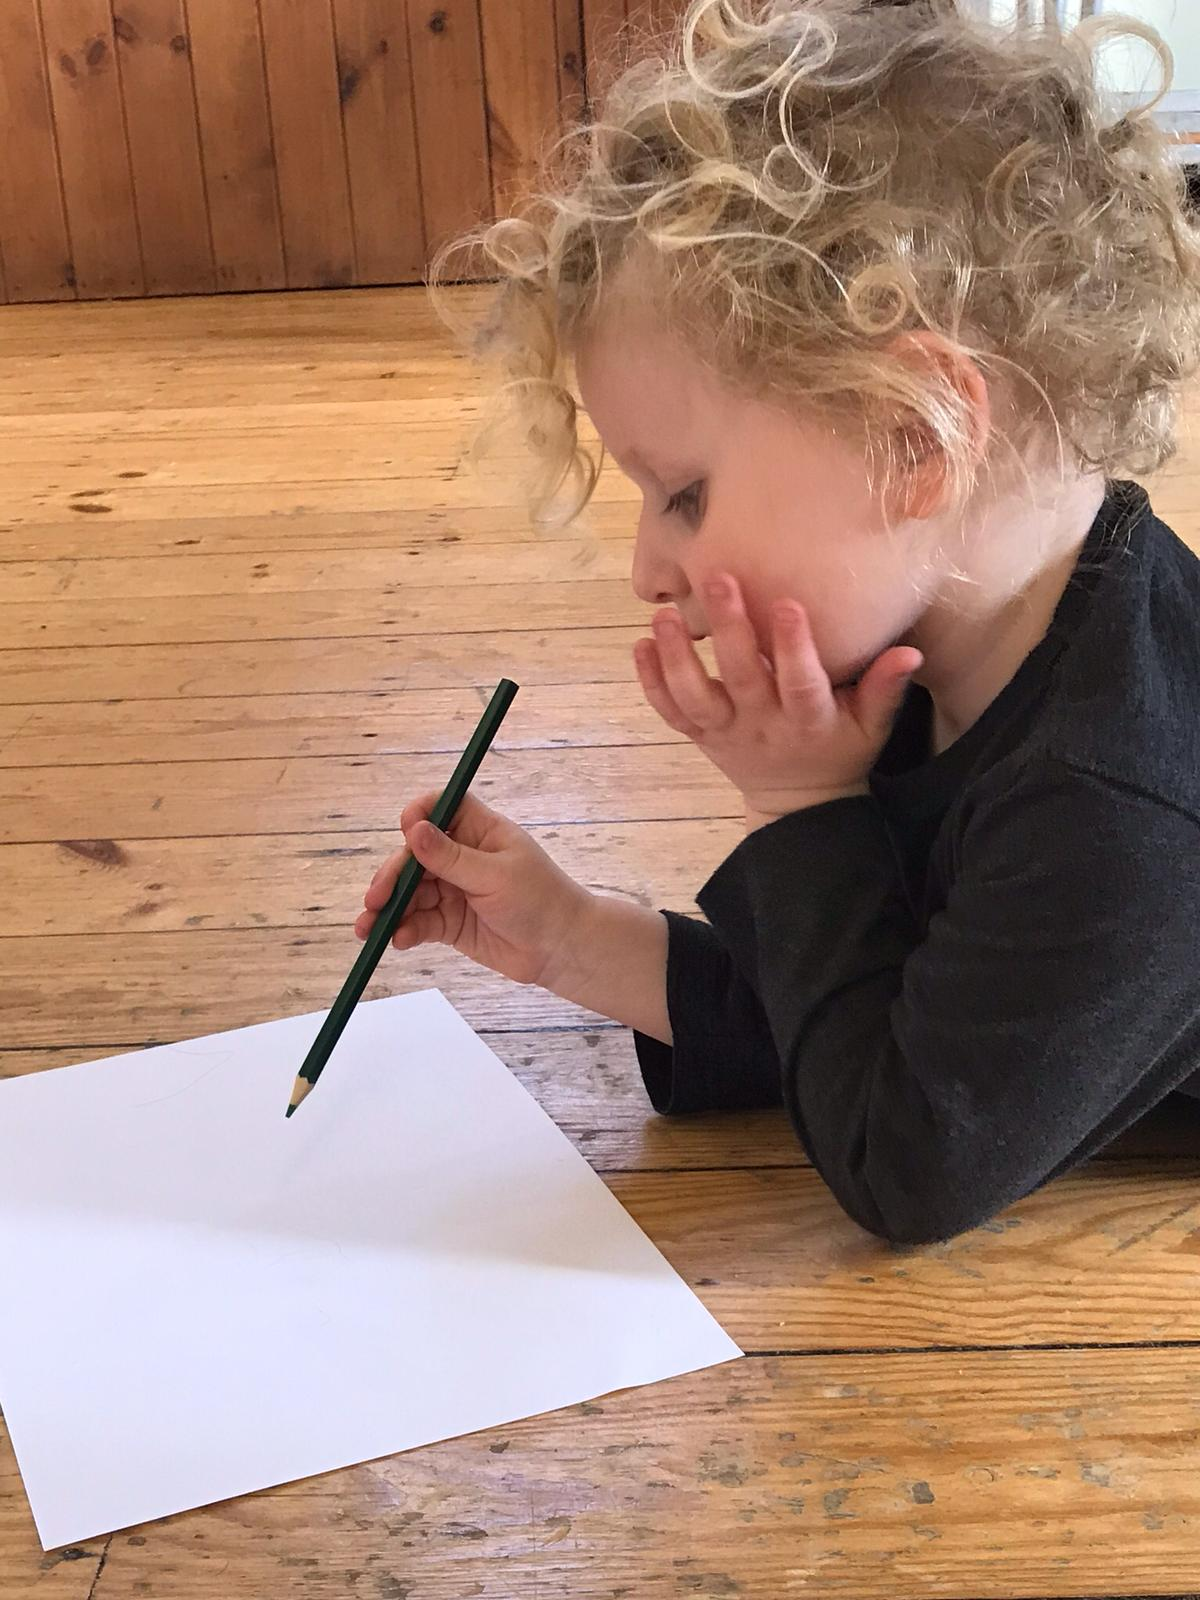 A toddler focussed on drawing.